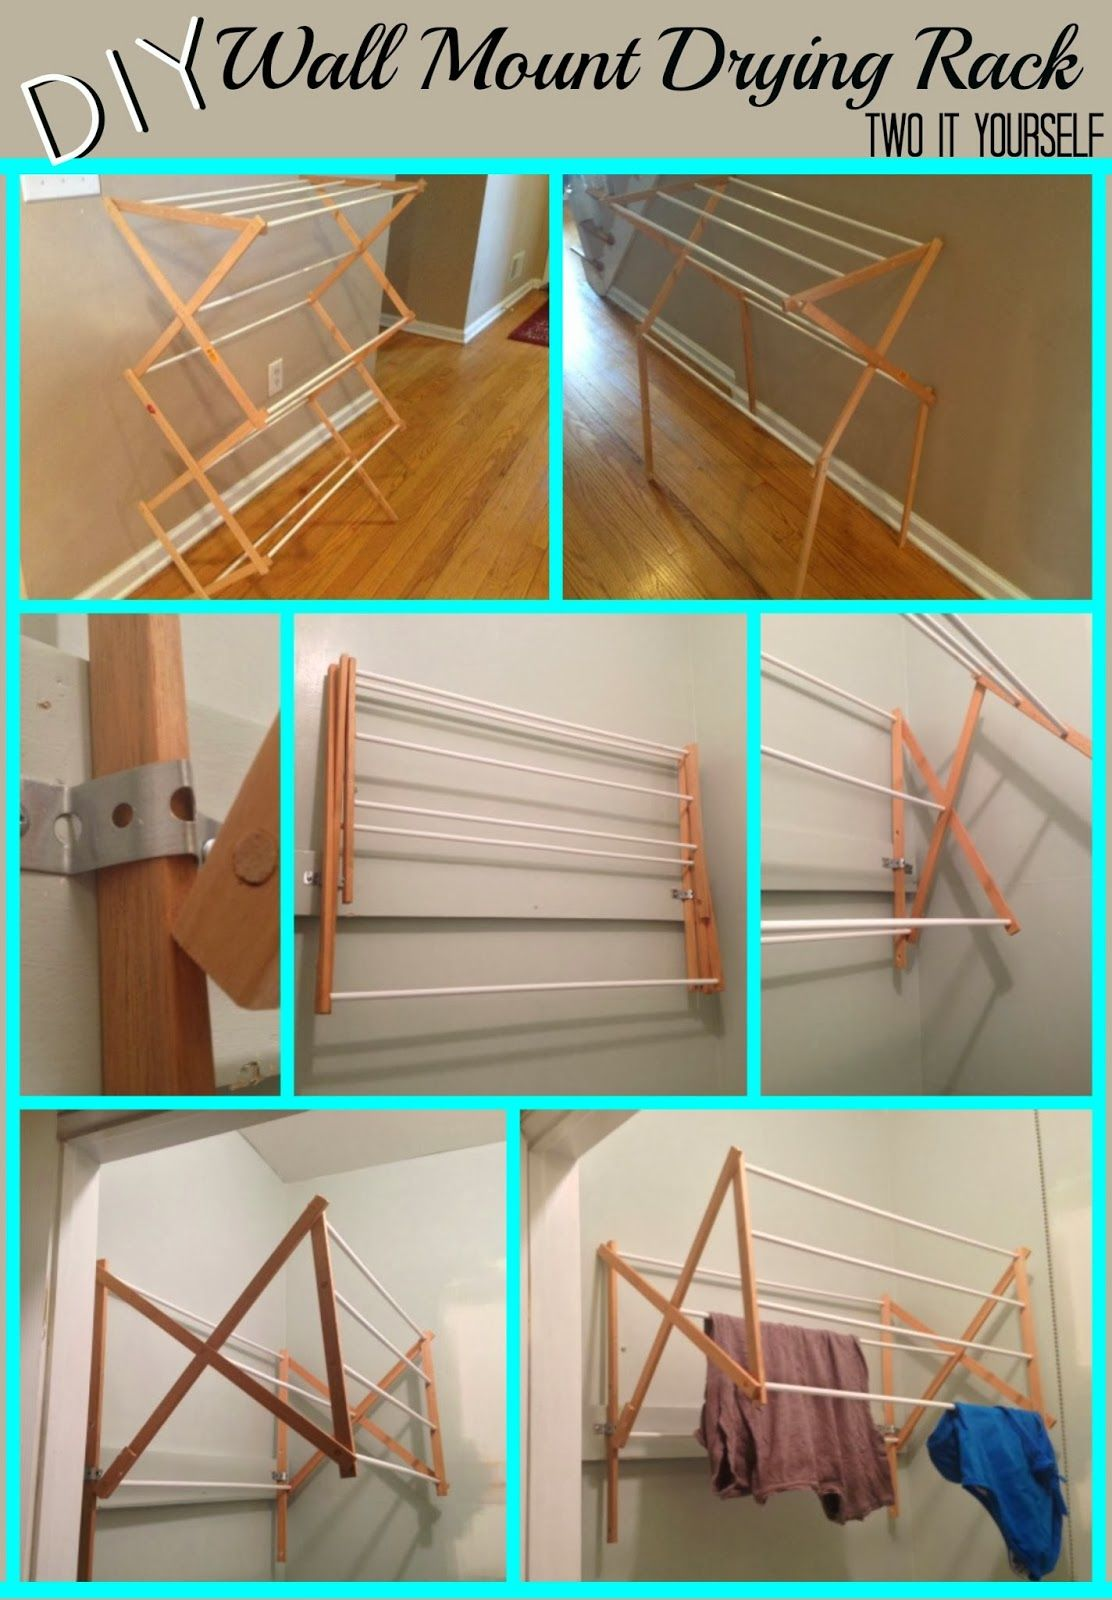 Two it yourself diy laundry drying rack wall mount from floor